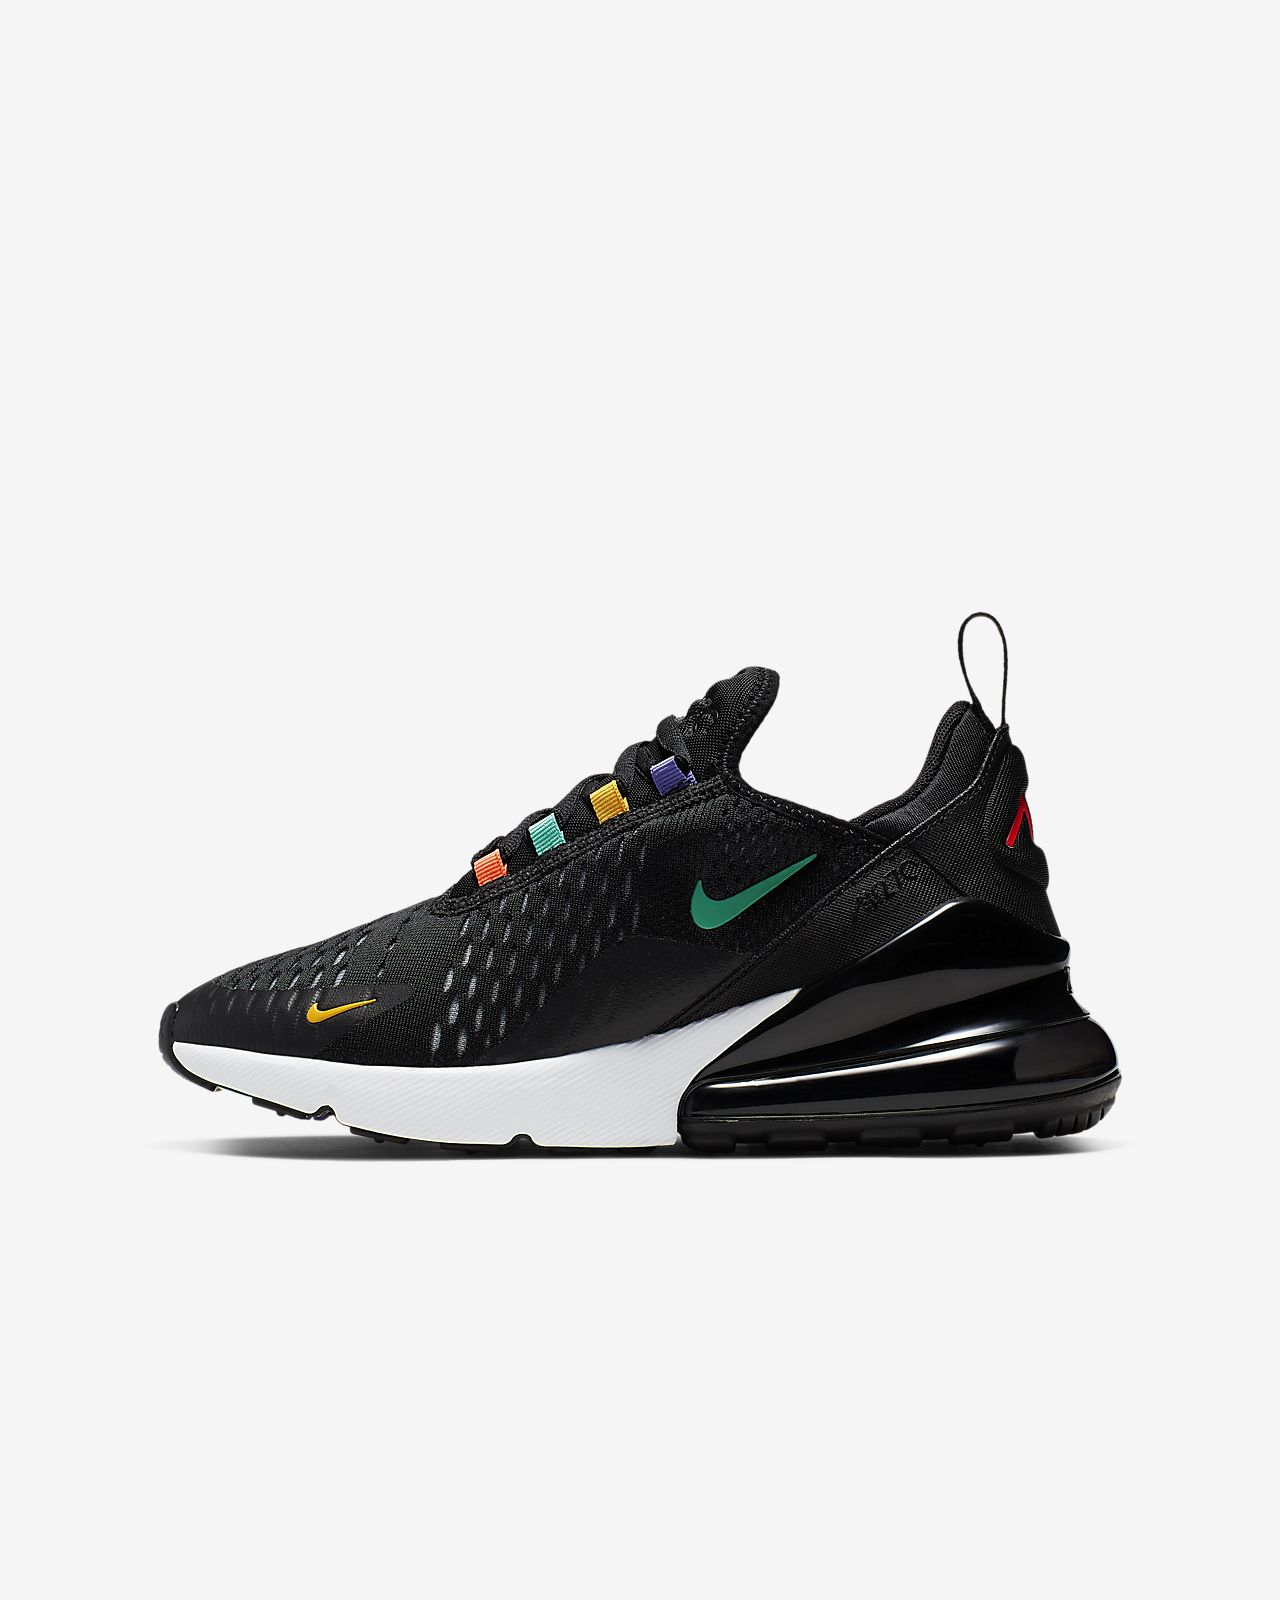 promo code 8878f 56d8e Nike Air Max 270 Game Change Big Kids' Shoe